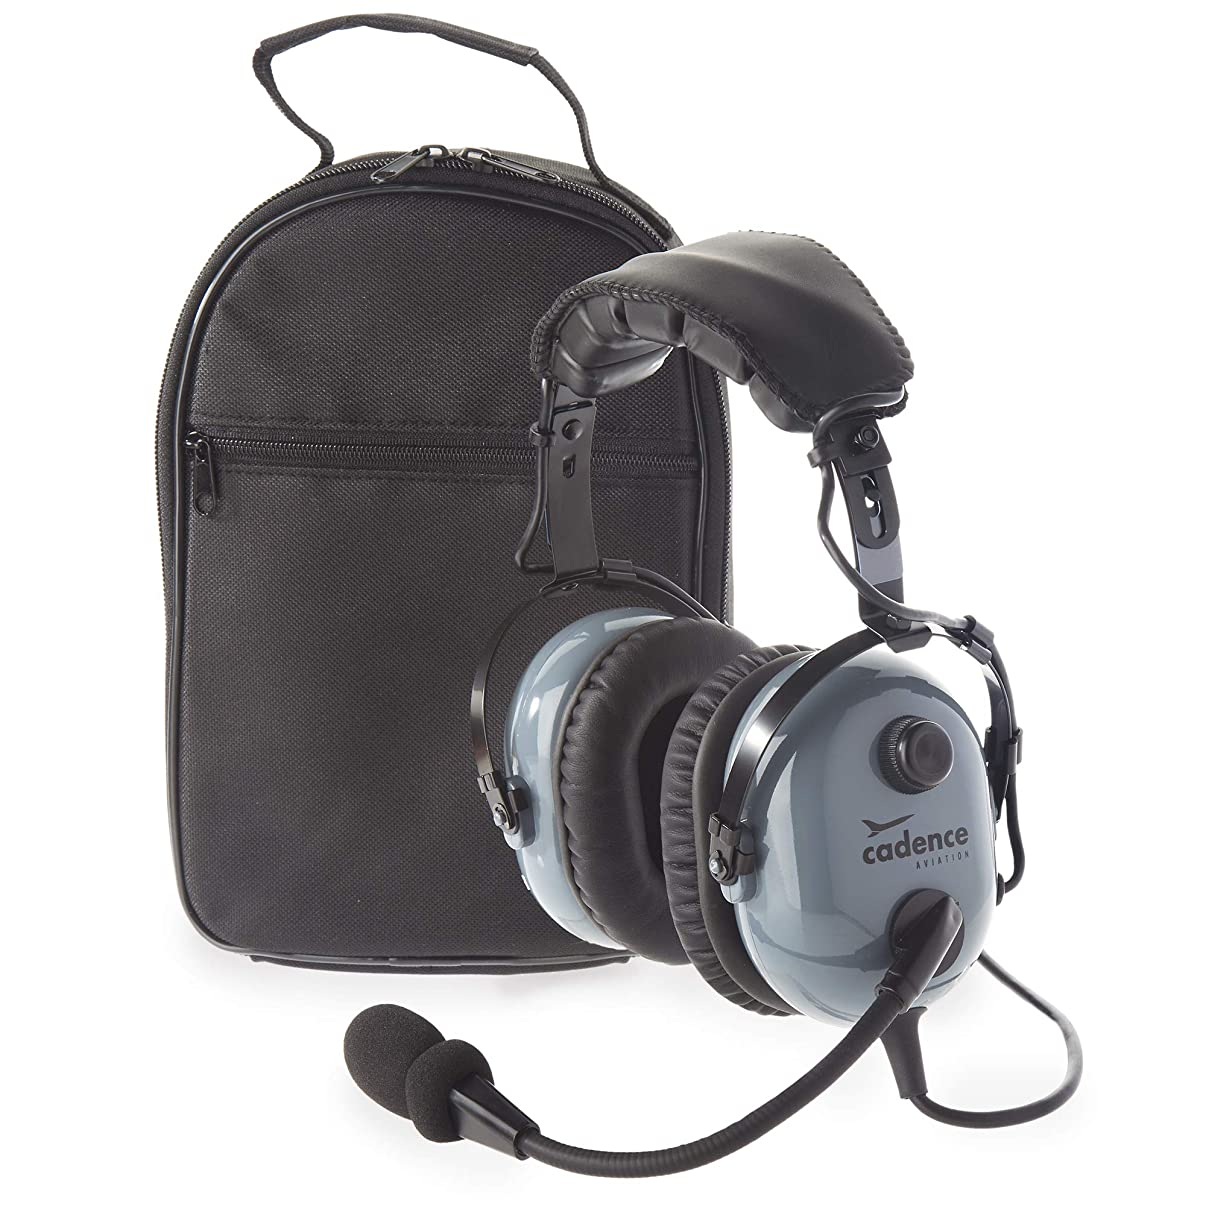 Cadence CA501 Premium PNR Pilot Aviation Headset with Aux Input and Carrying Case - Stealth Gray